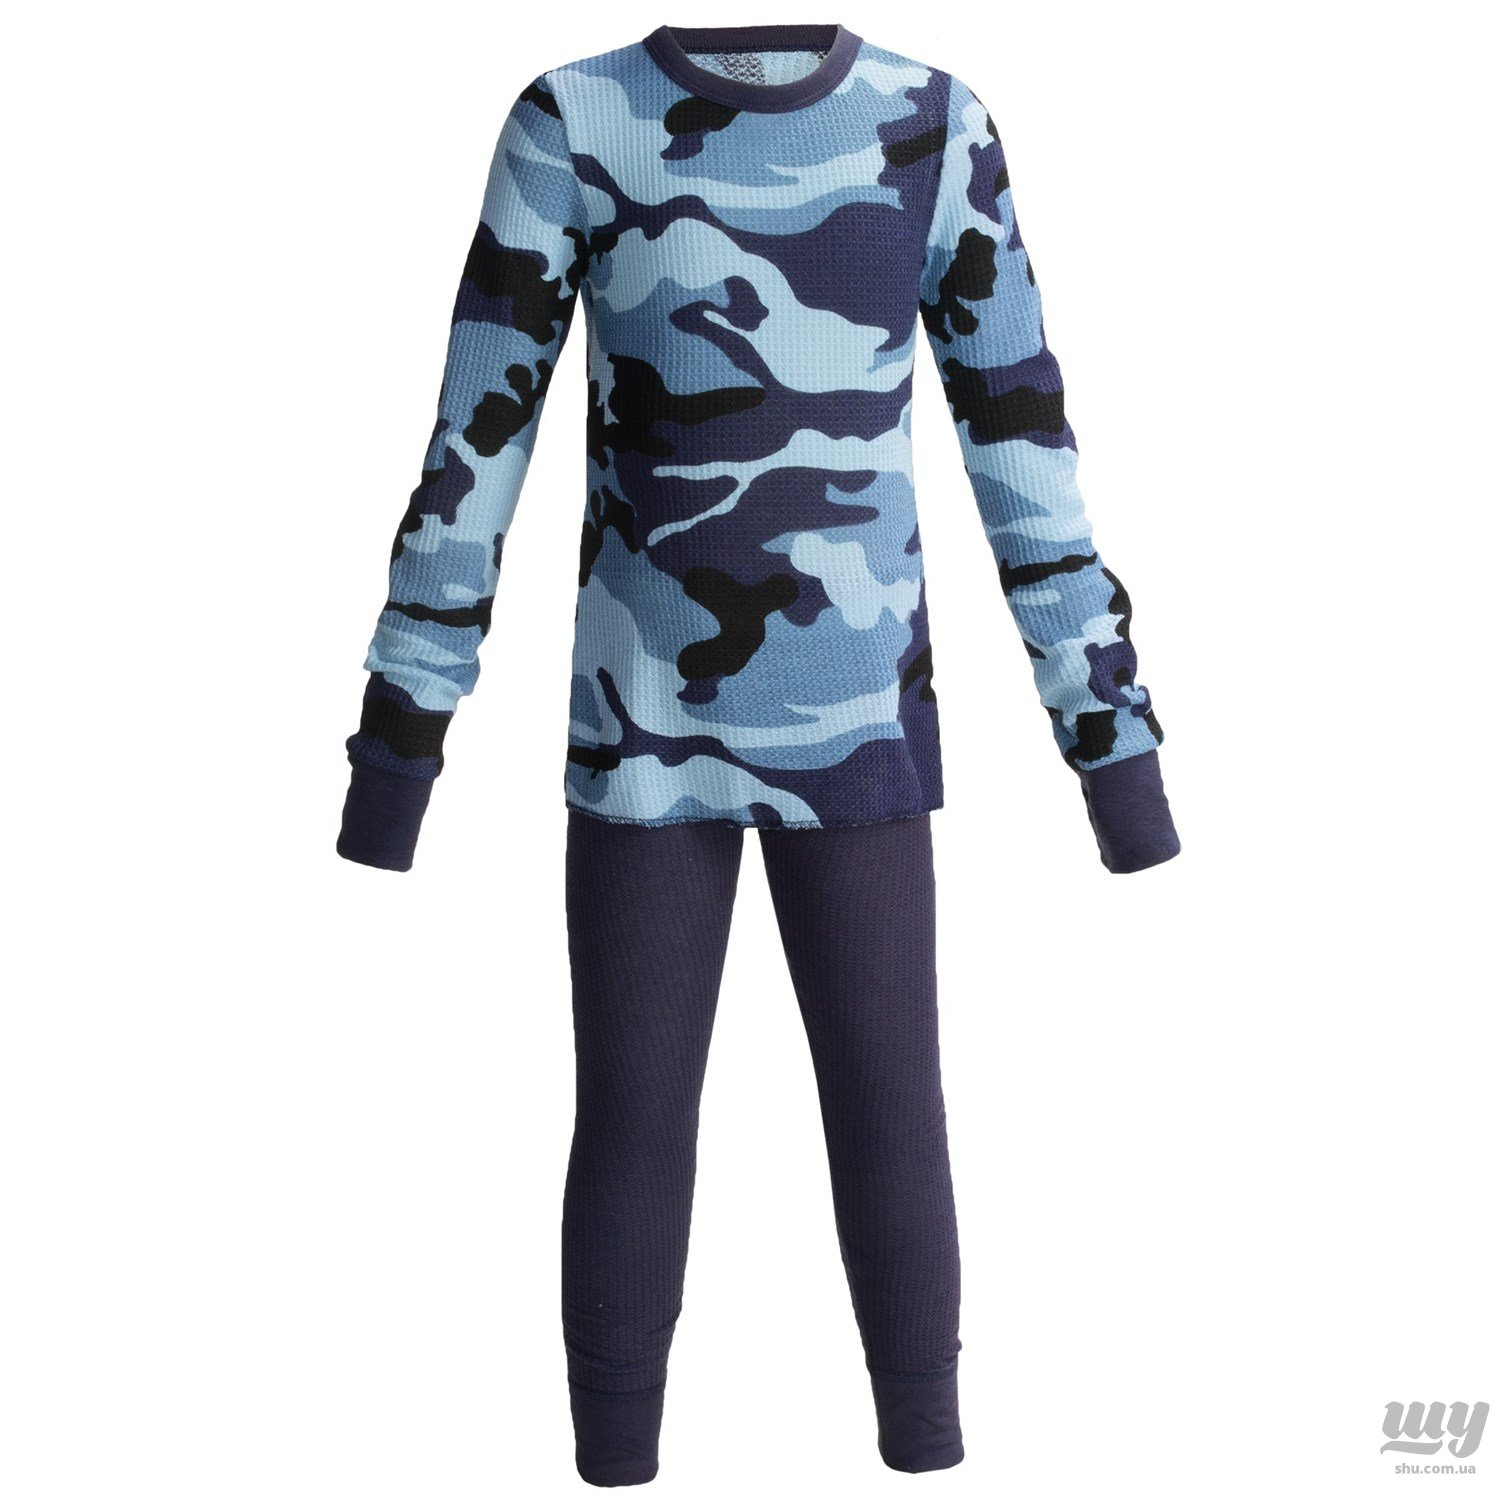 fruit-of-the-loom-thermal-underwear-set-2-piece-for-boys-in-blue-camo~p~7468p_02~1500.2.jpg